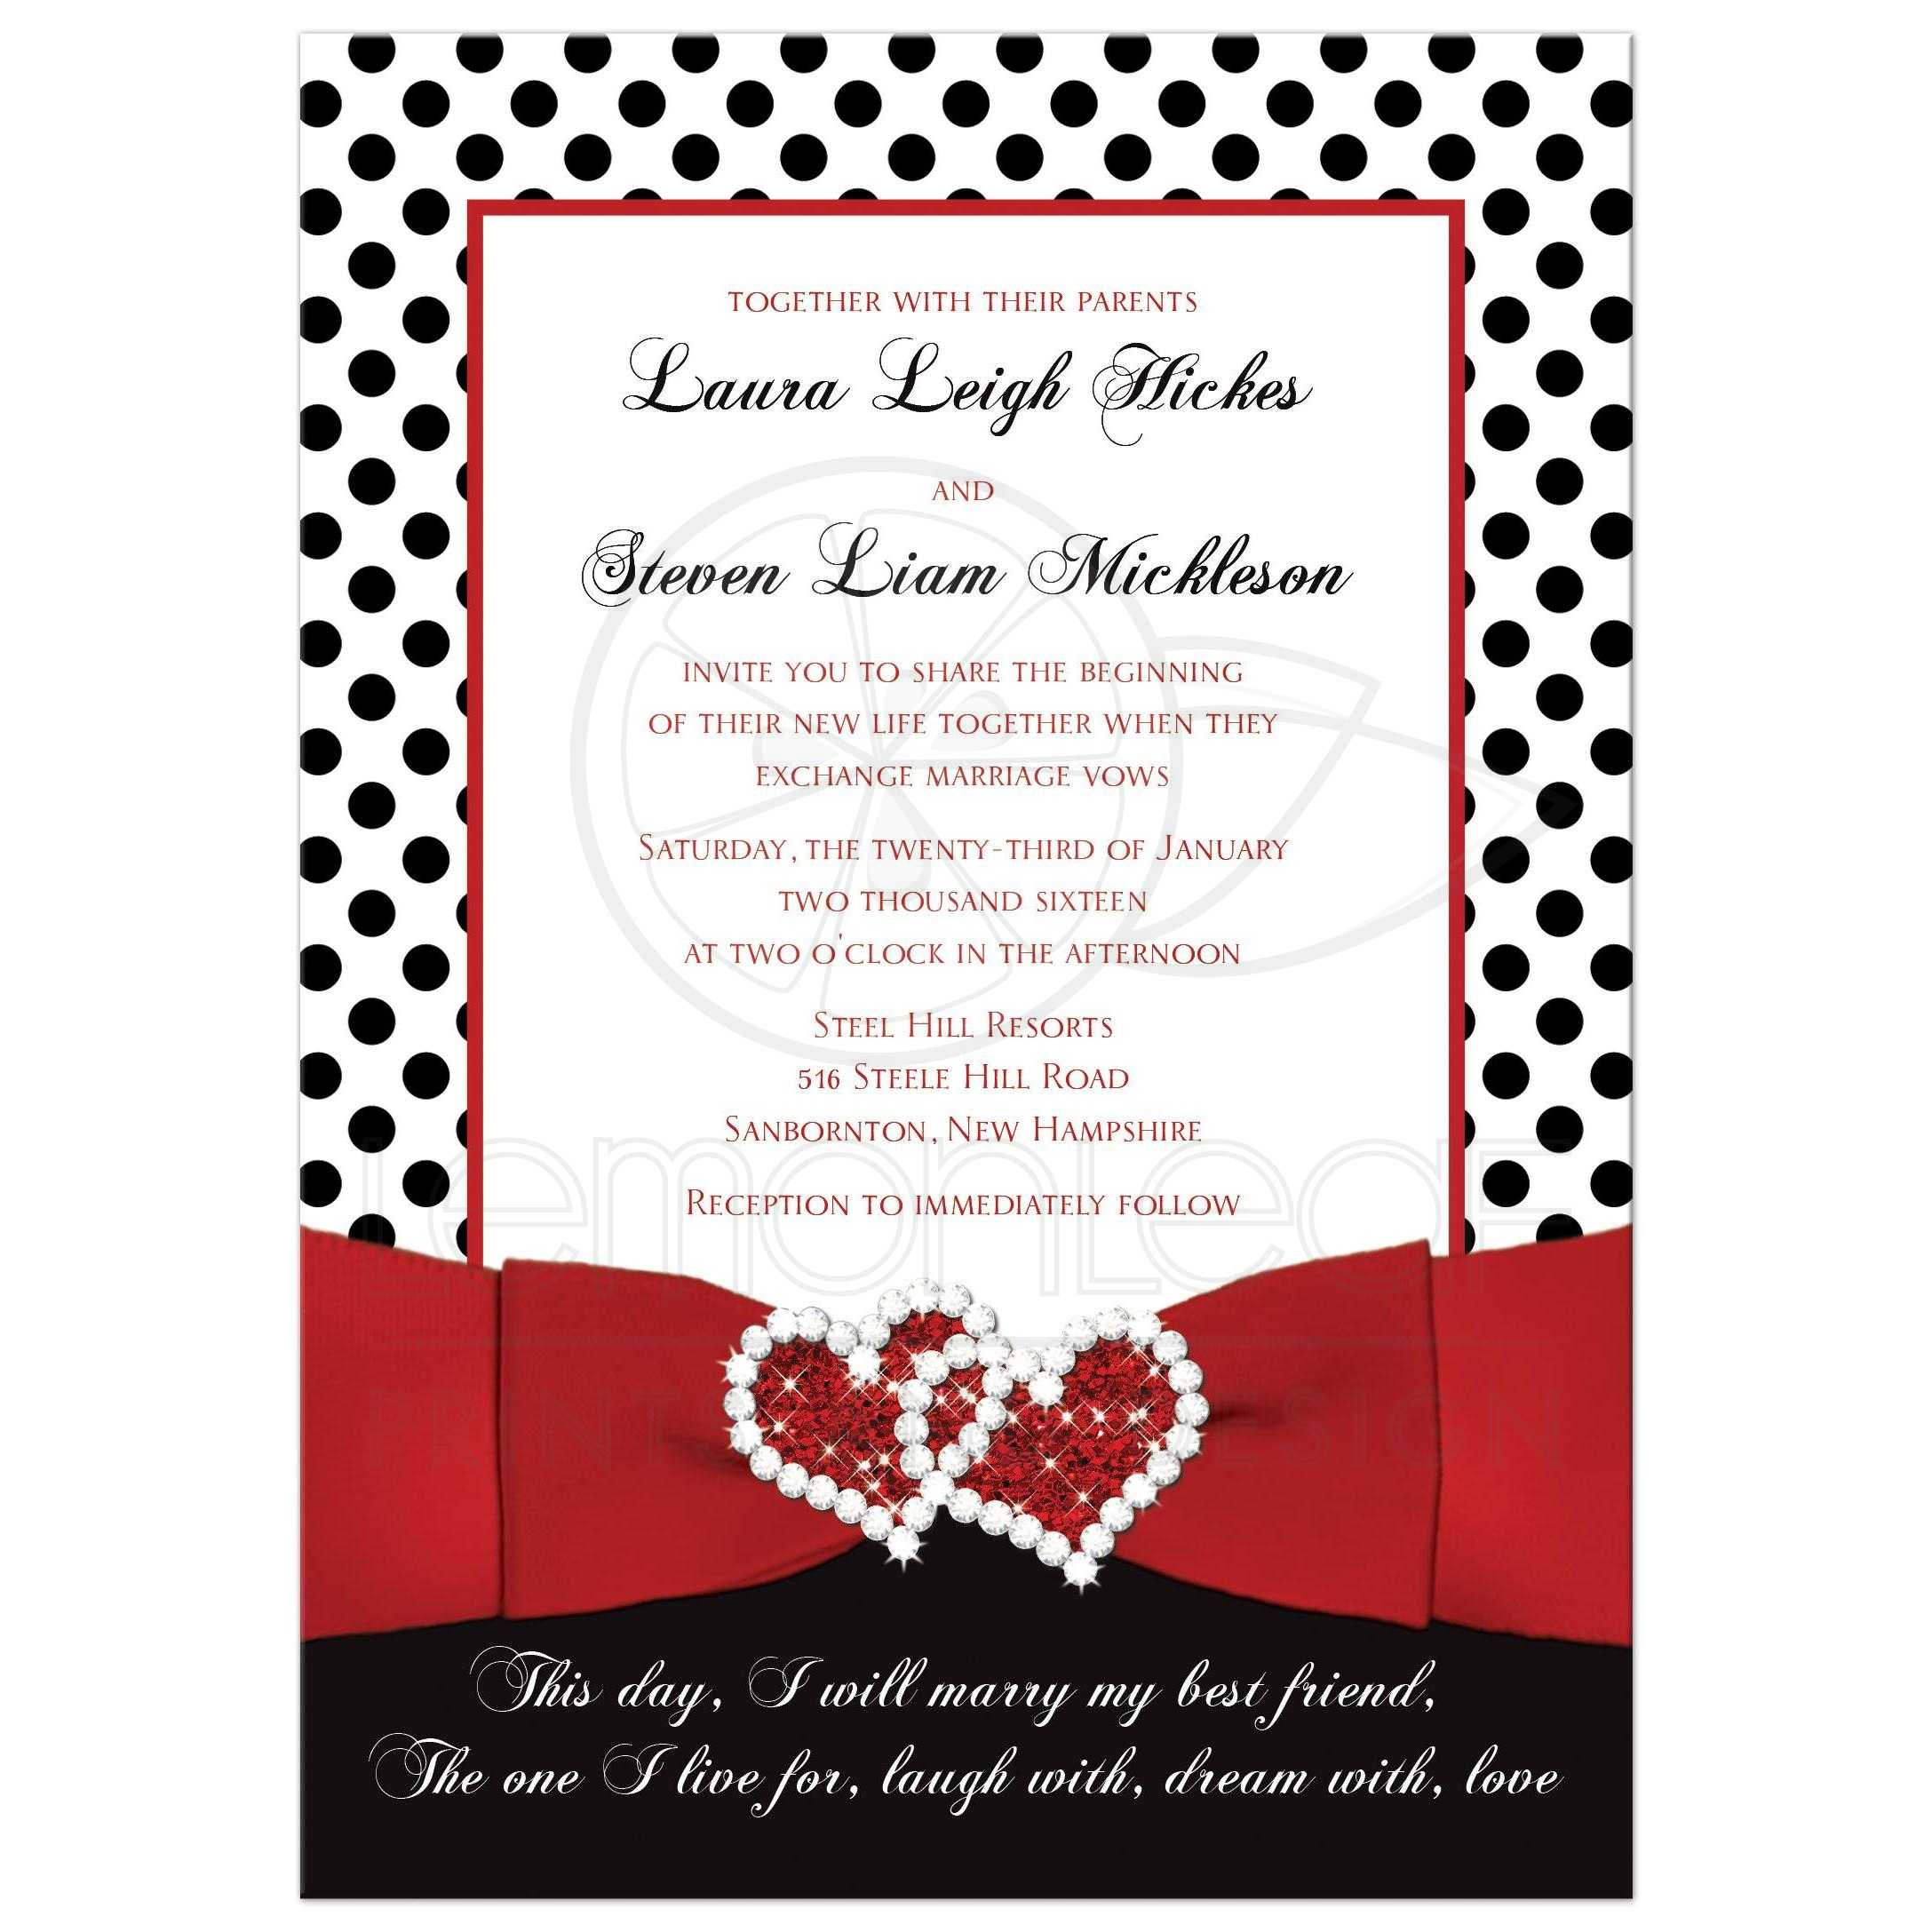 Wedding Invitation | Black, White Red | Polka Dots ...